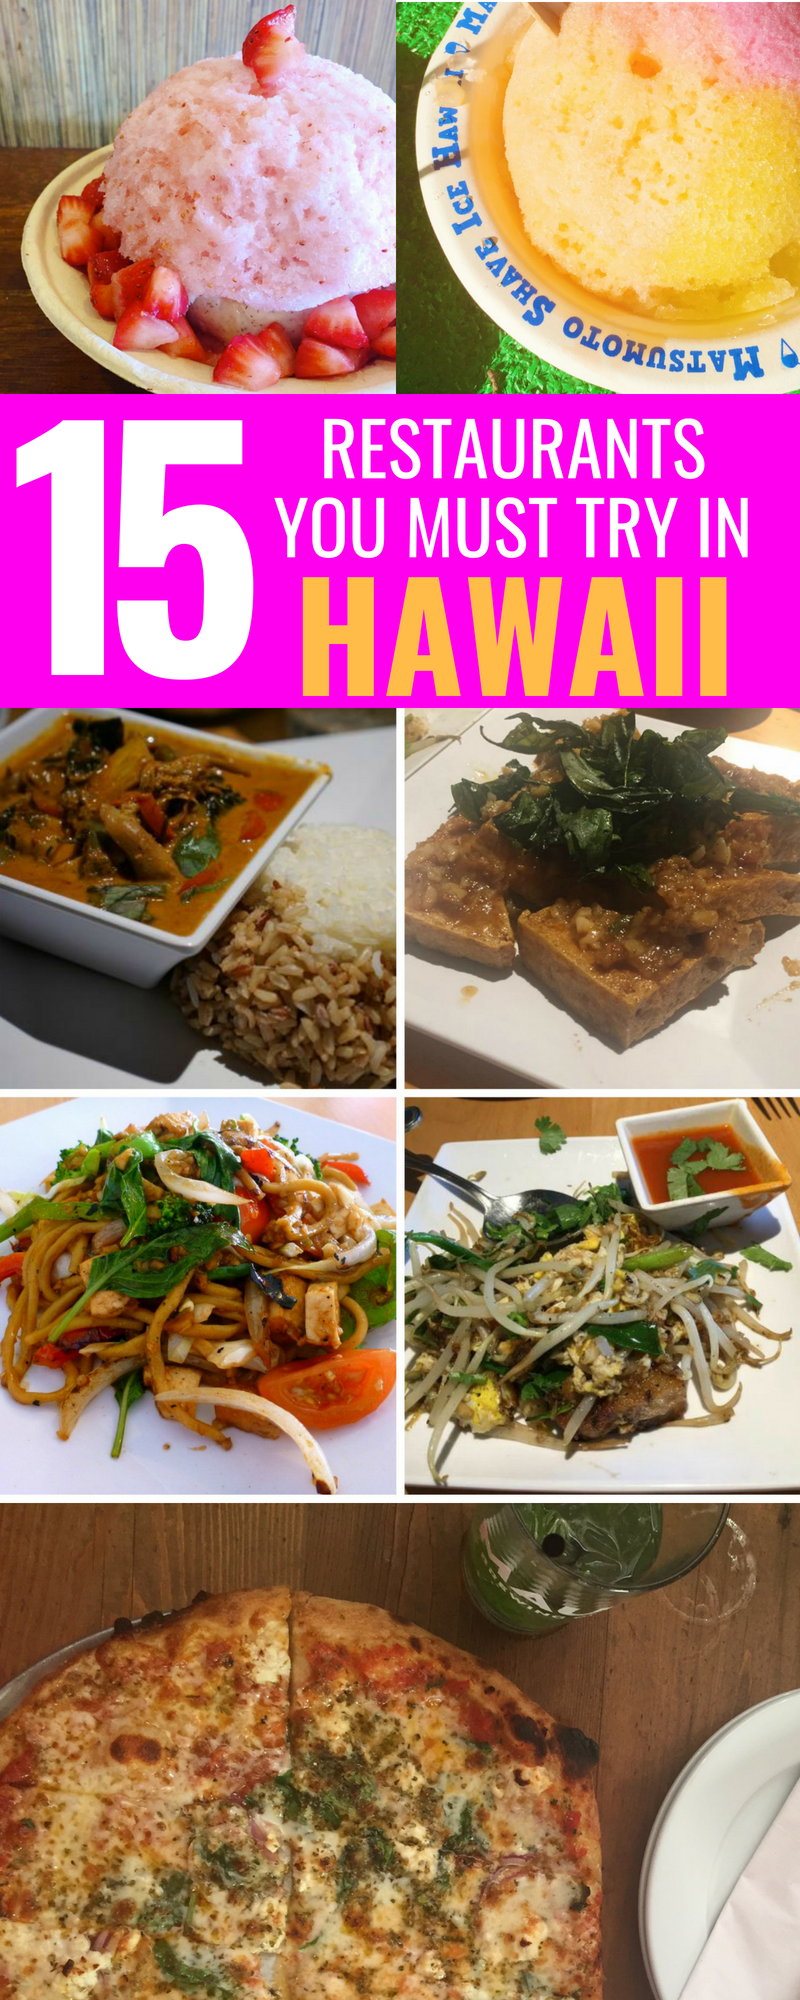 15 Must-Visit Restaurants In Hawaii - Best Restaurants To Visit In Hawaii - Traveling to Hawaii - Oahu - Maui - Hawaii - Lanai -Kauai - Food In Hawaii #hawaii #maui #kauai #oahu #travel